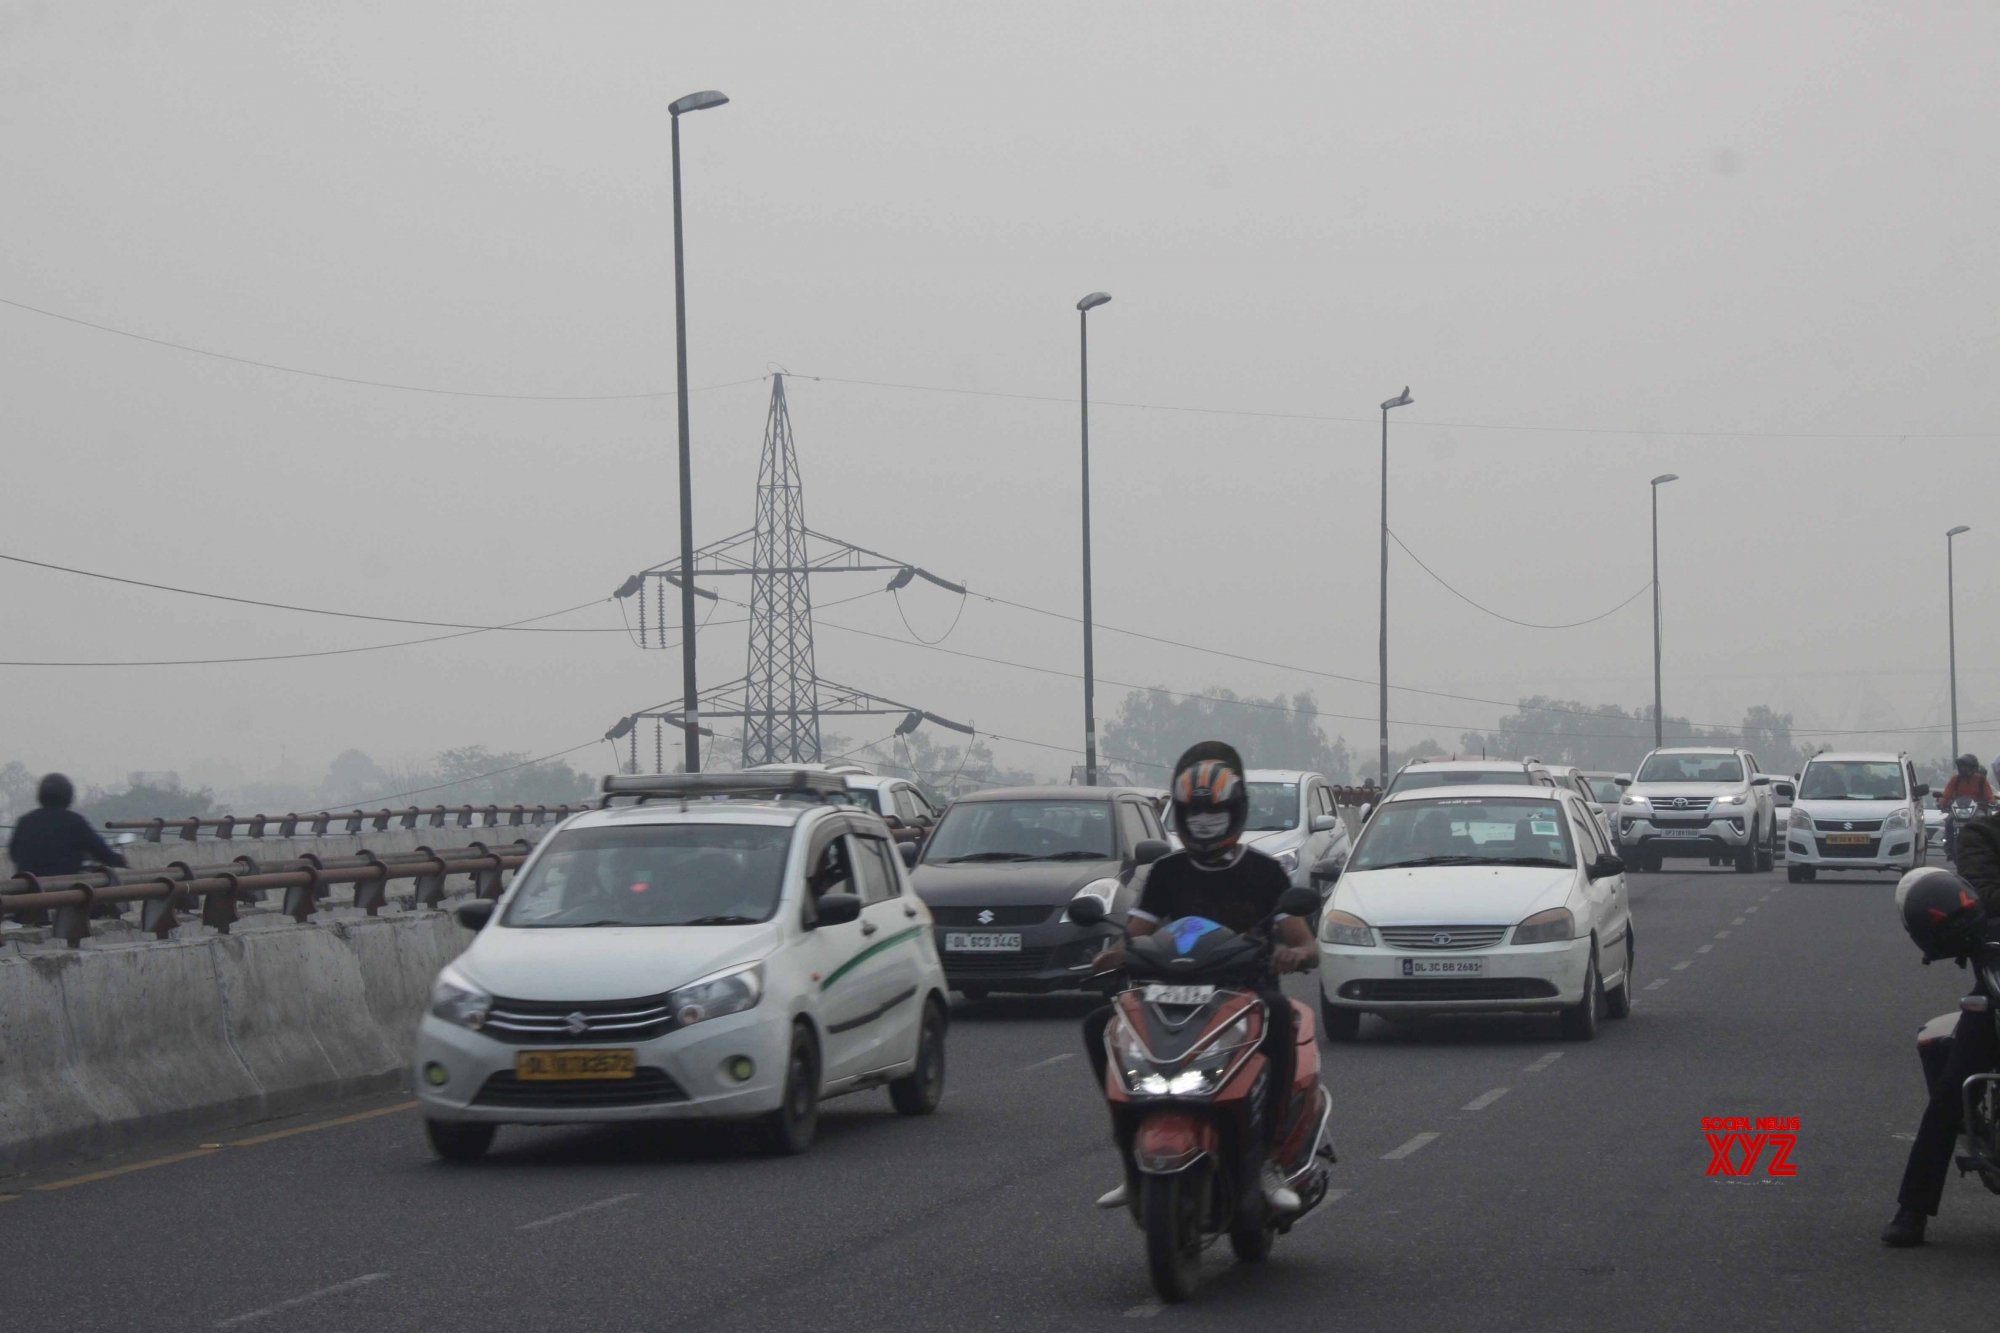 Delhi AQI improves to 252, forecast predicts deterioration in coming days